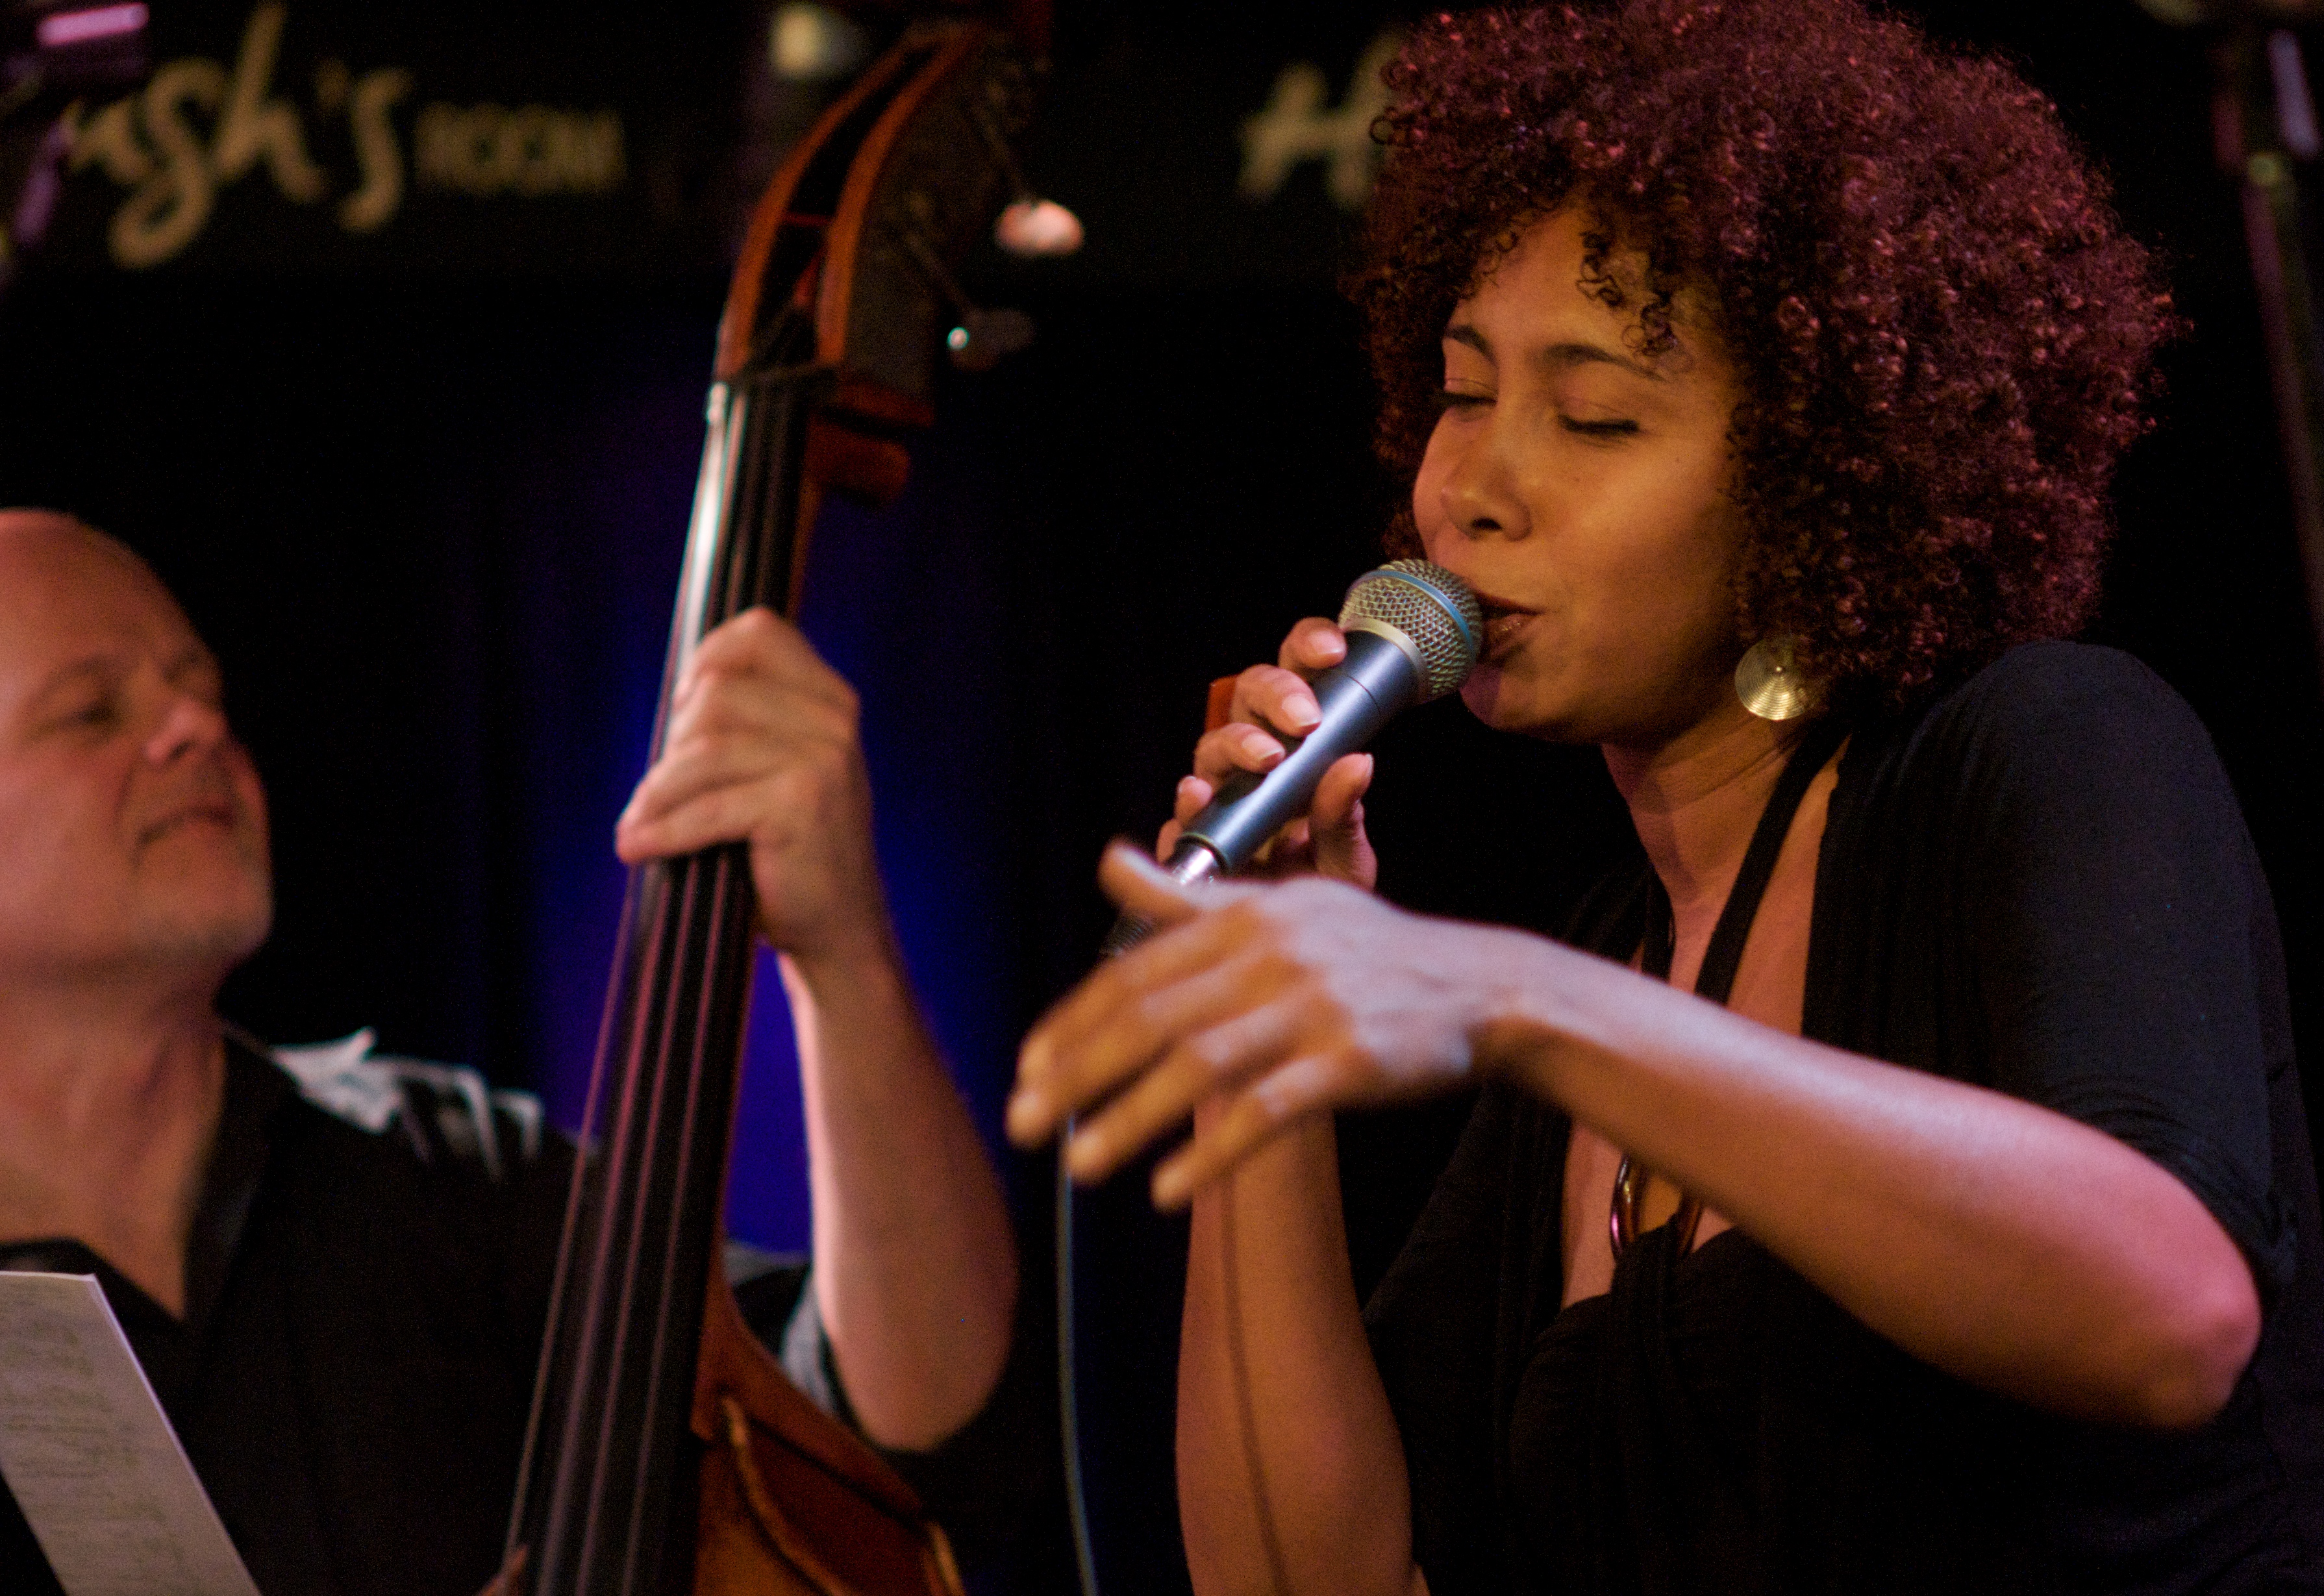 Sinal Aberto @ World Jazz for Haiti. Pic by Lisa Silverman